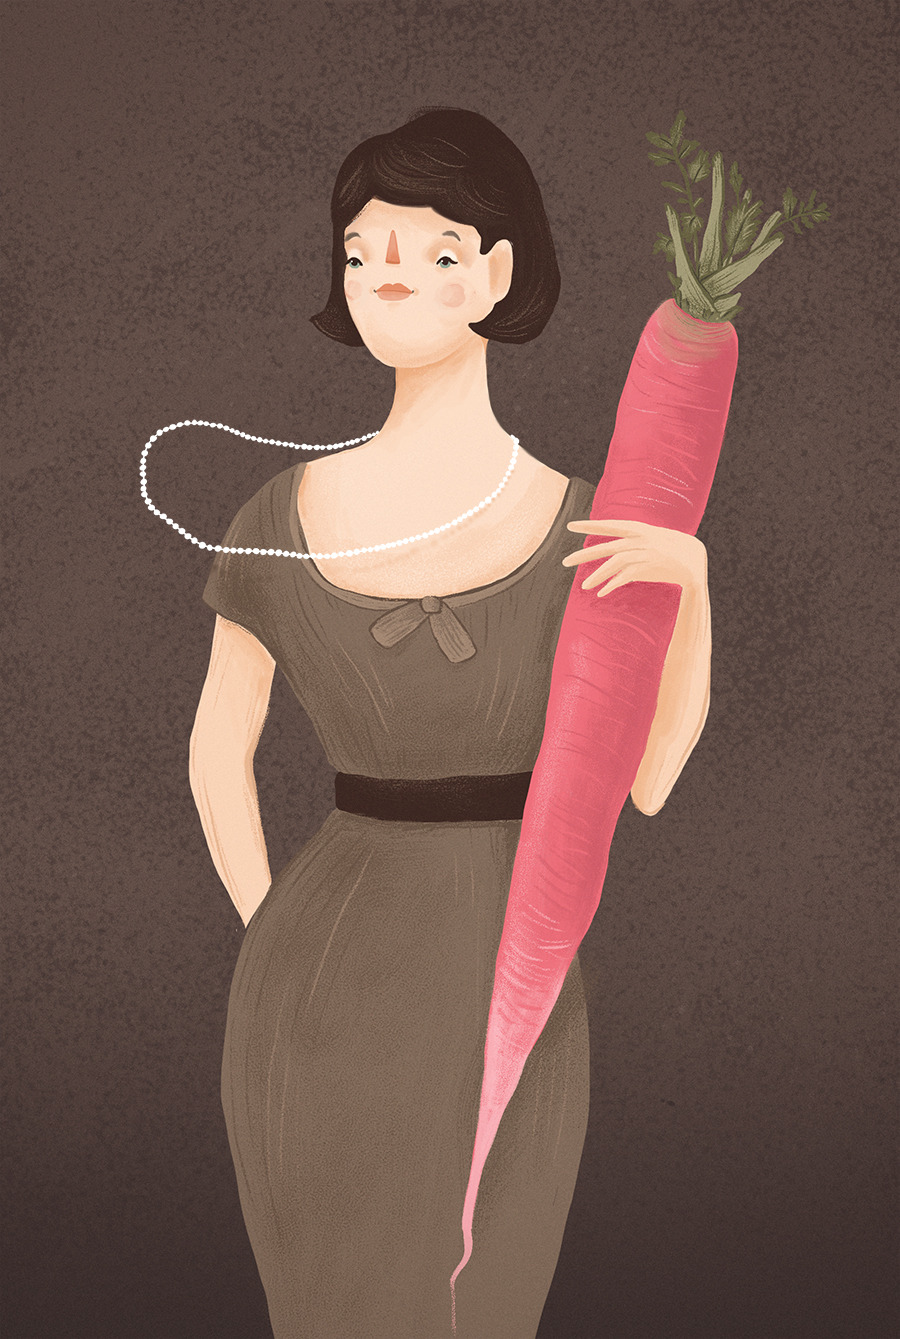 …kind of liked the idea of giant roots and vintage girls!